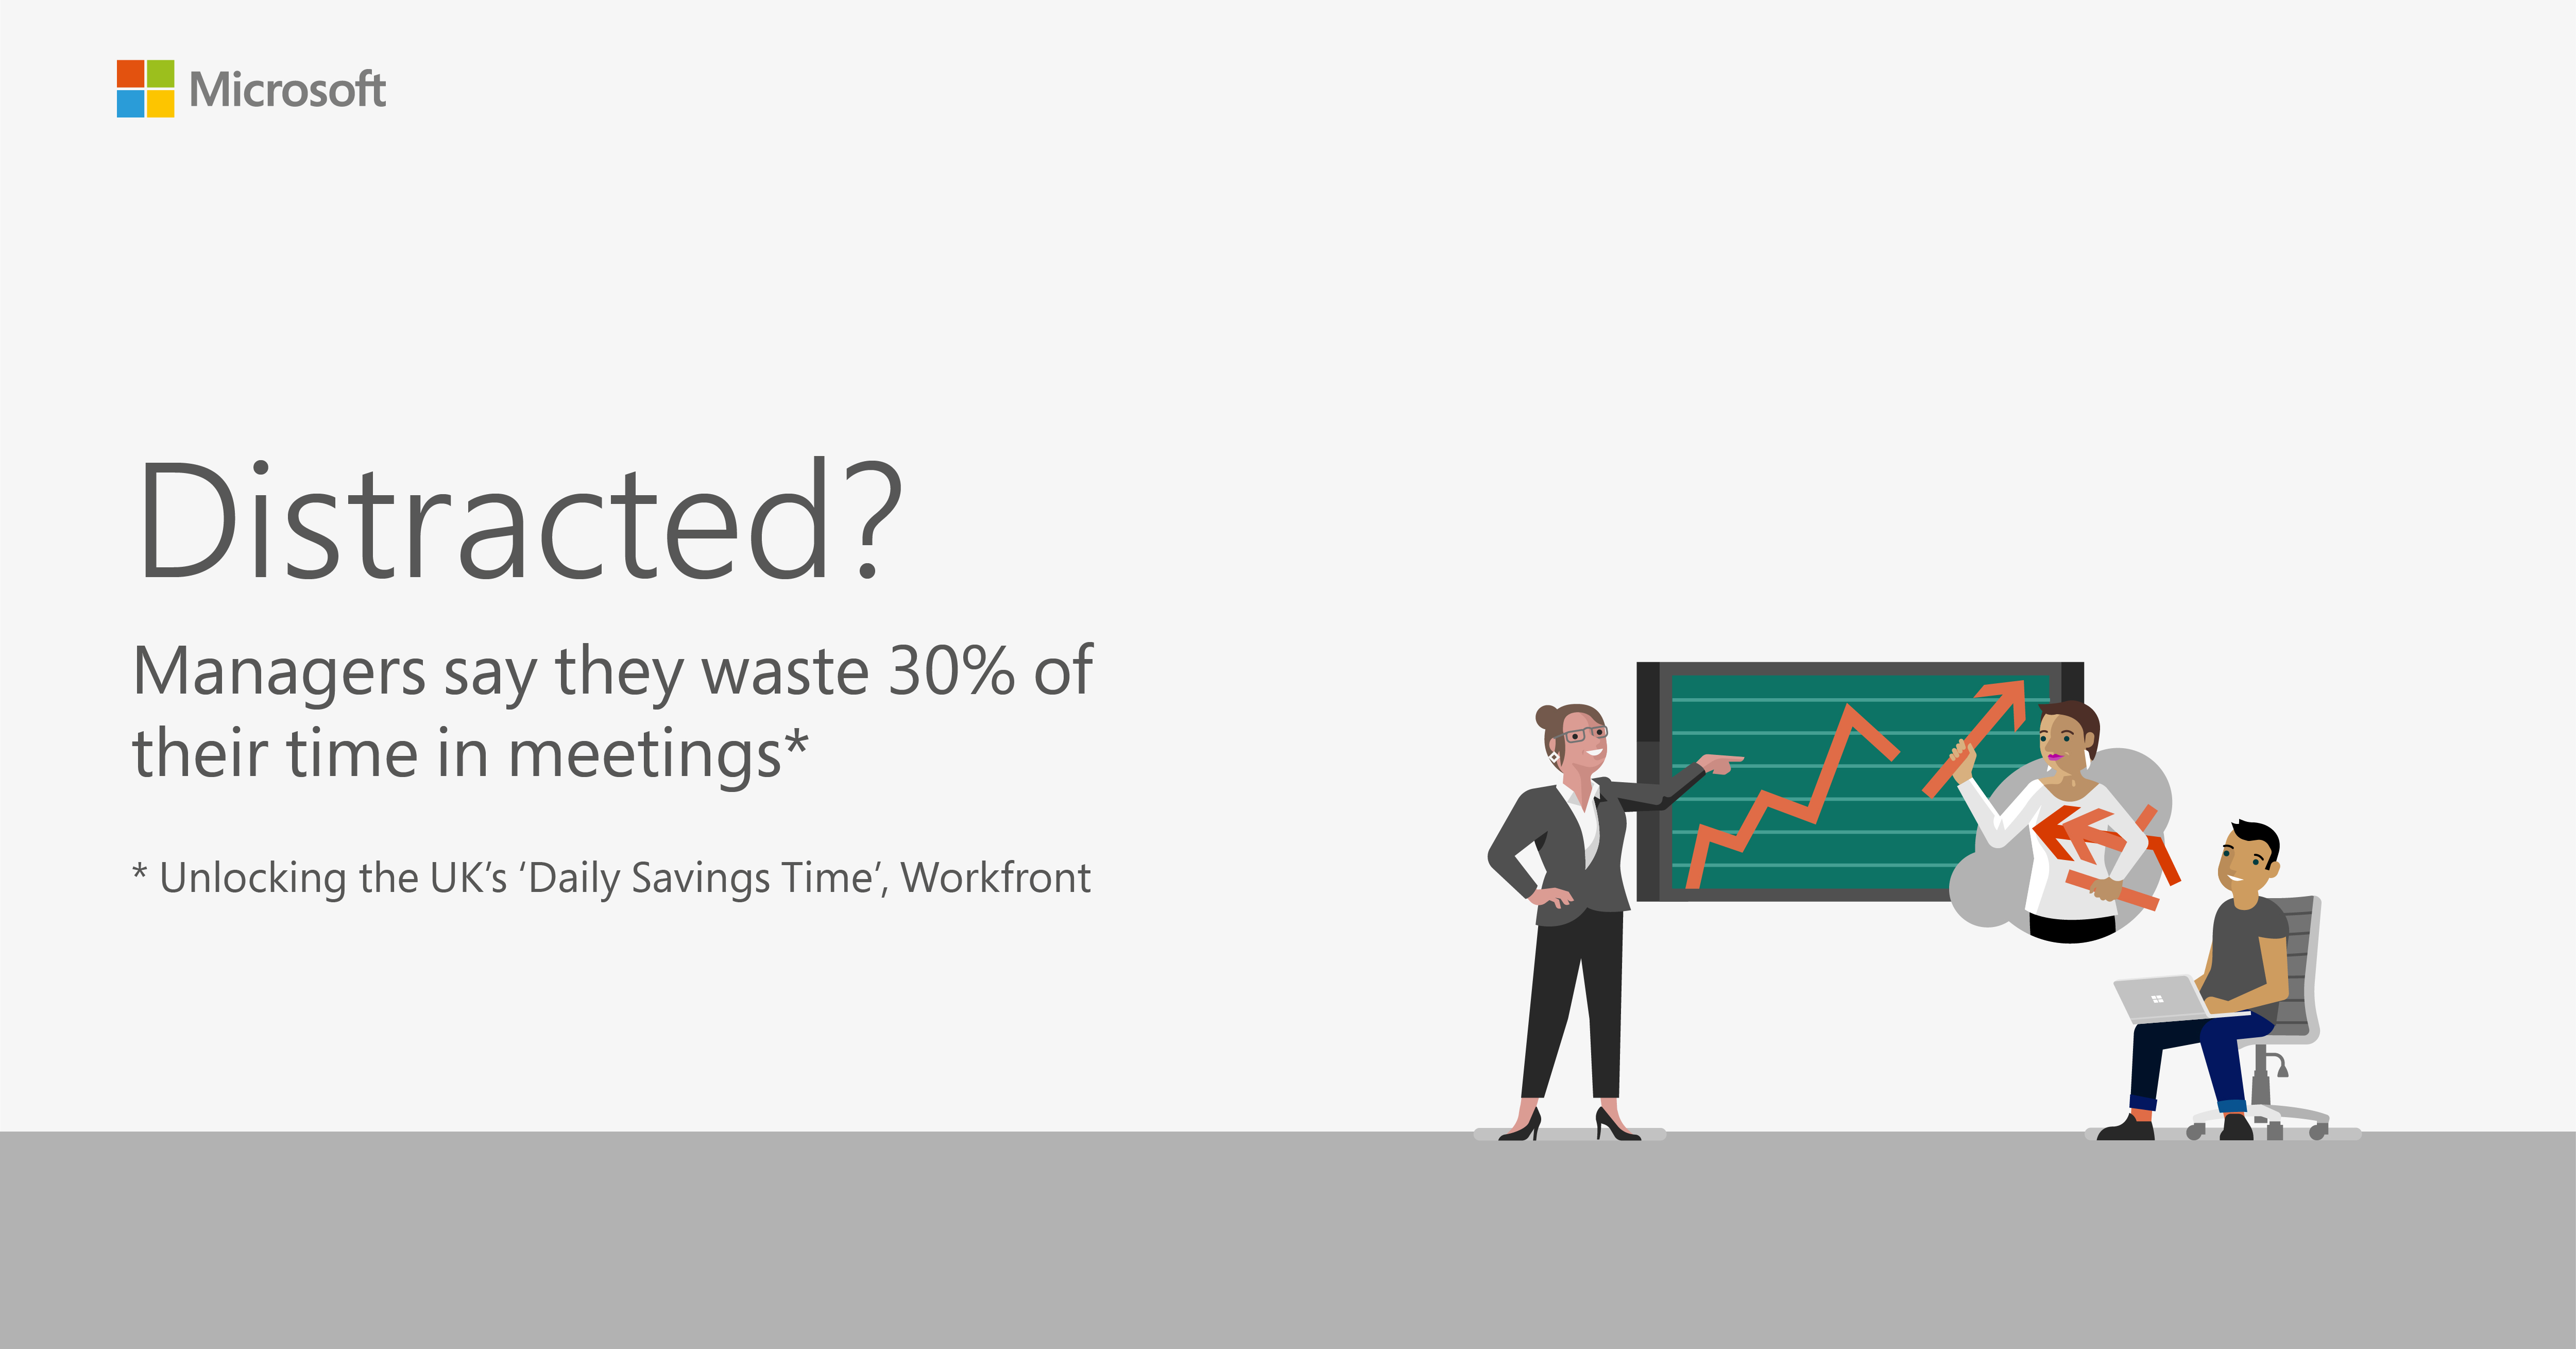 Graphic showing managers waste 30% of their time in meetings